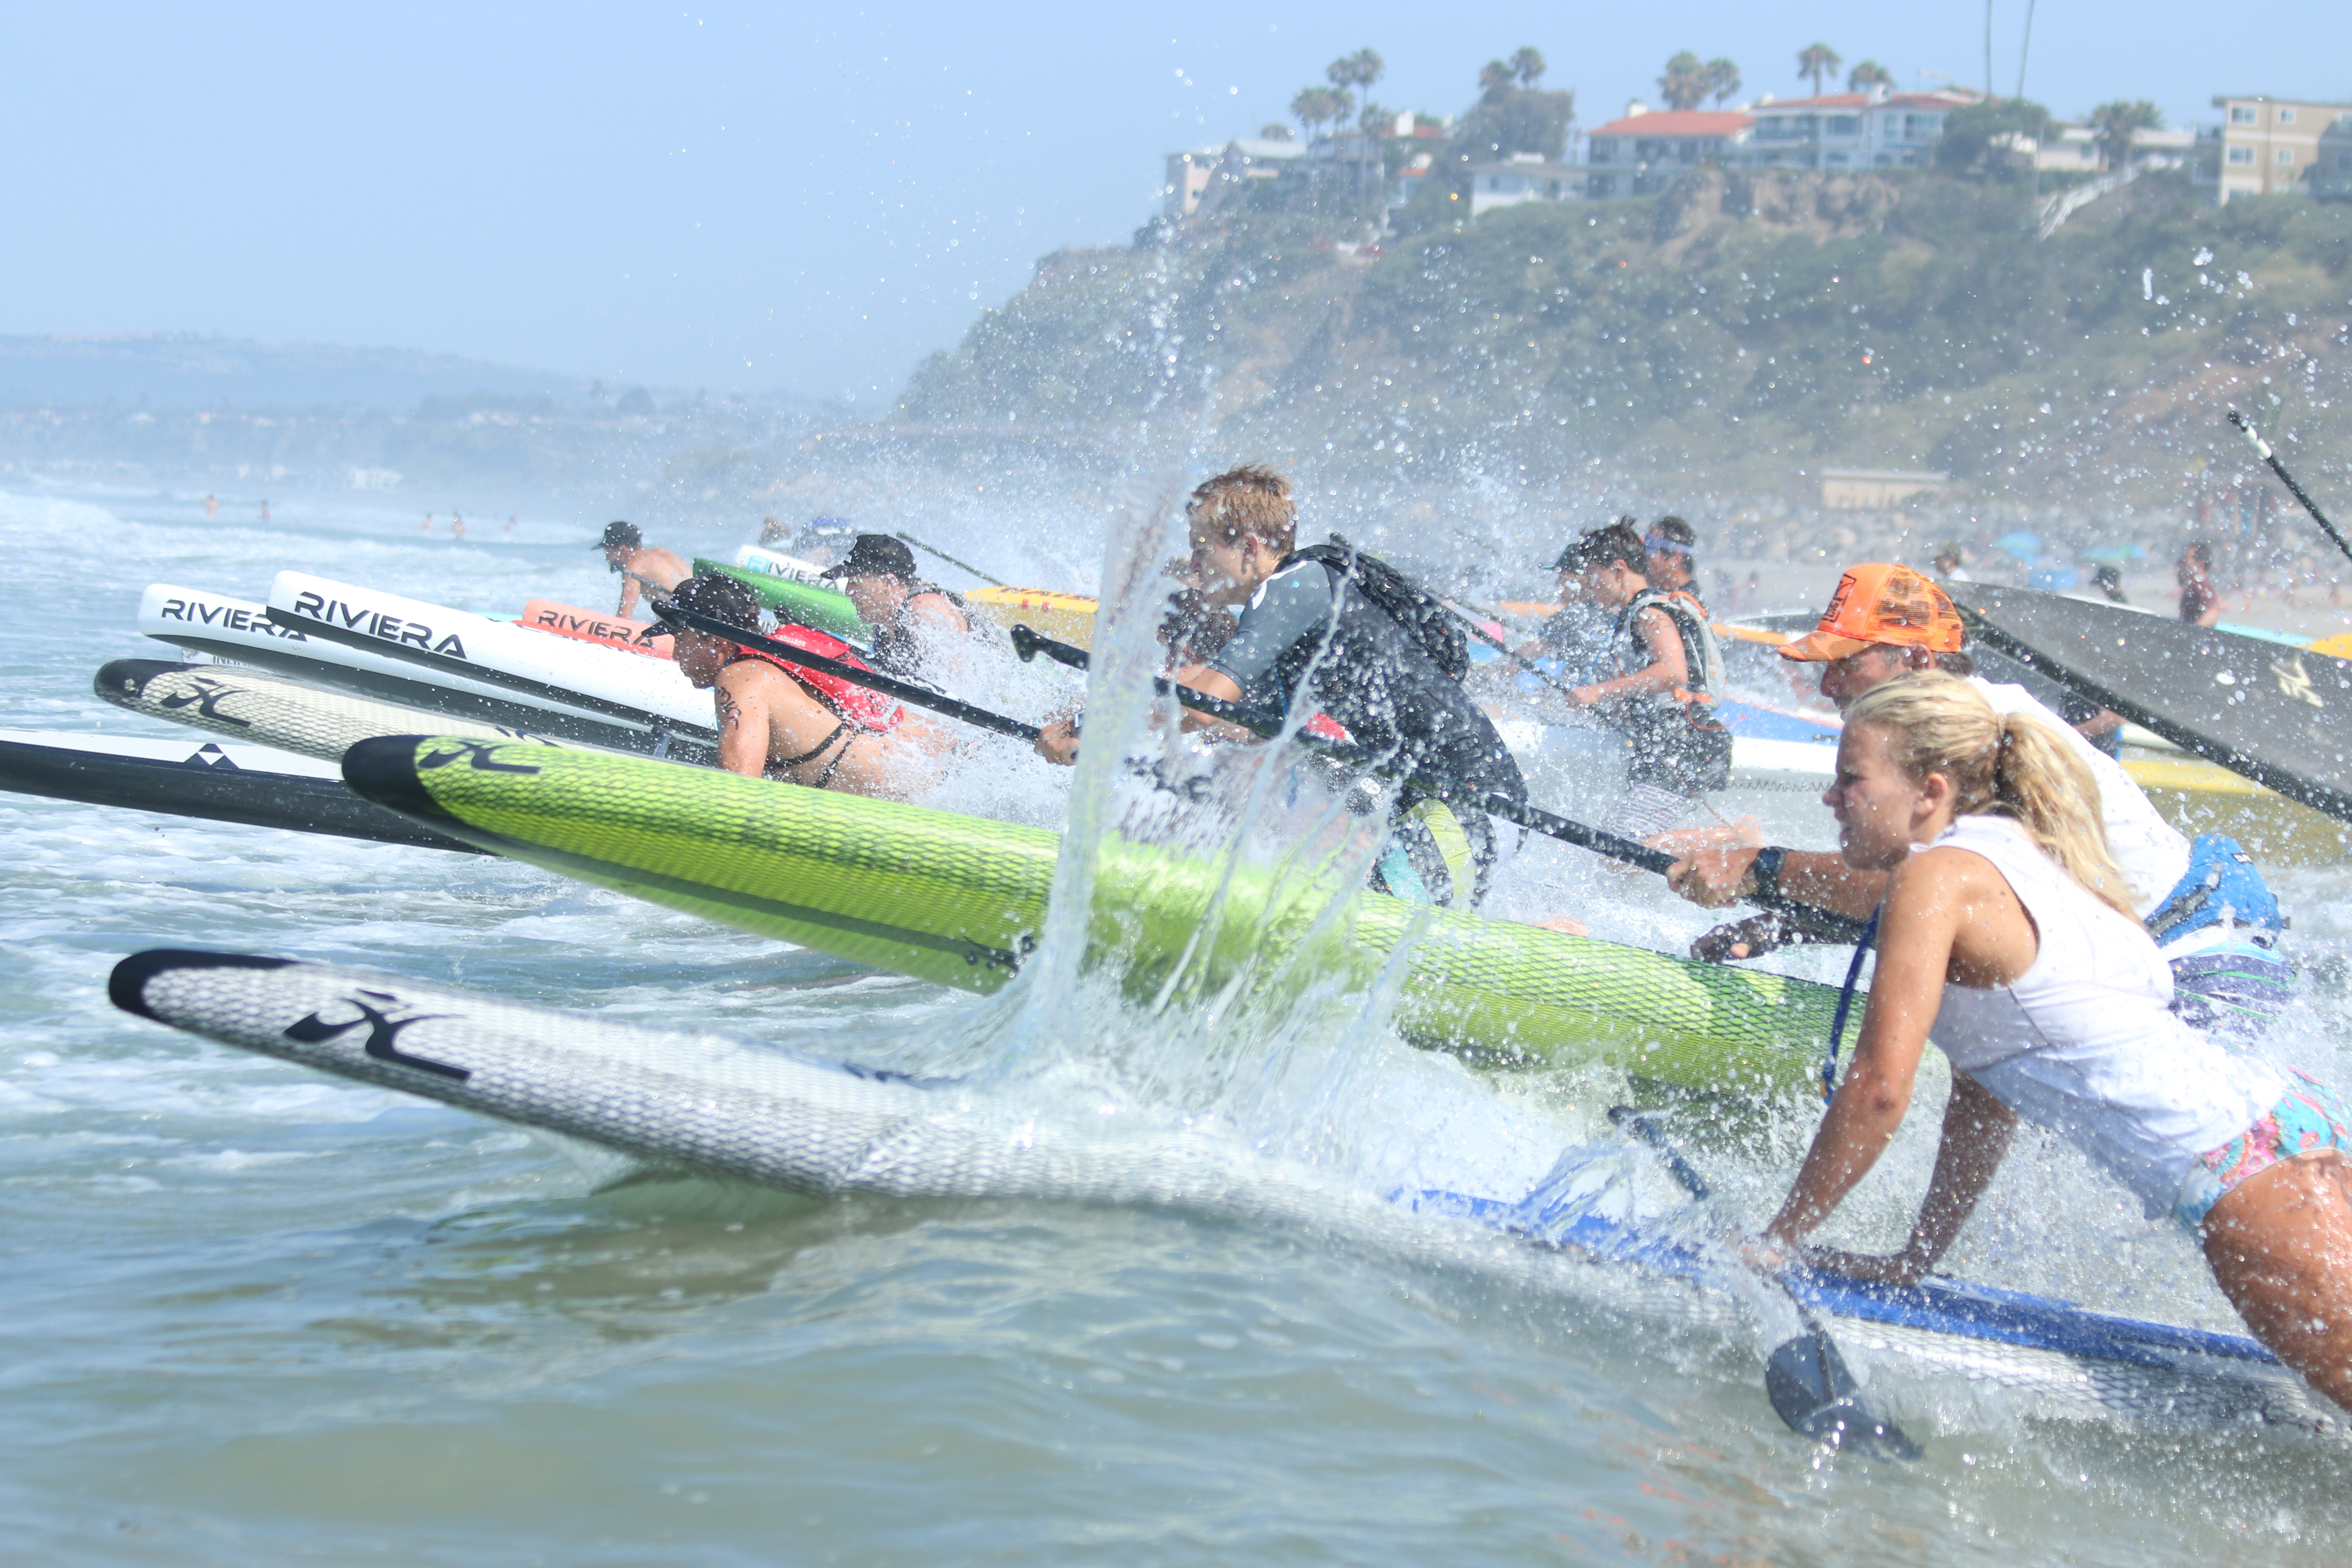 Stand up paddle board competitions at the 2015 Ocean Festival in San Clemente. Photo: Eric Heinz